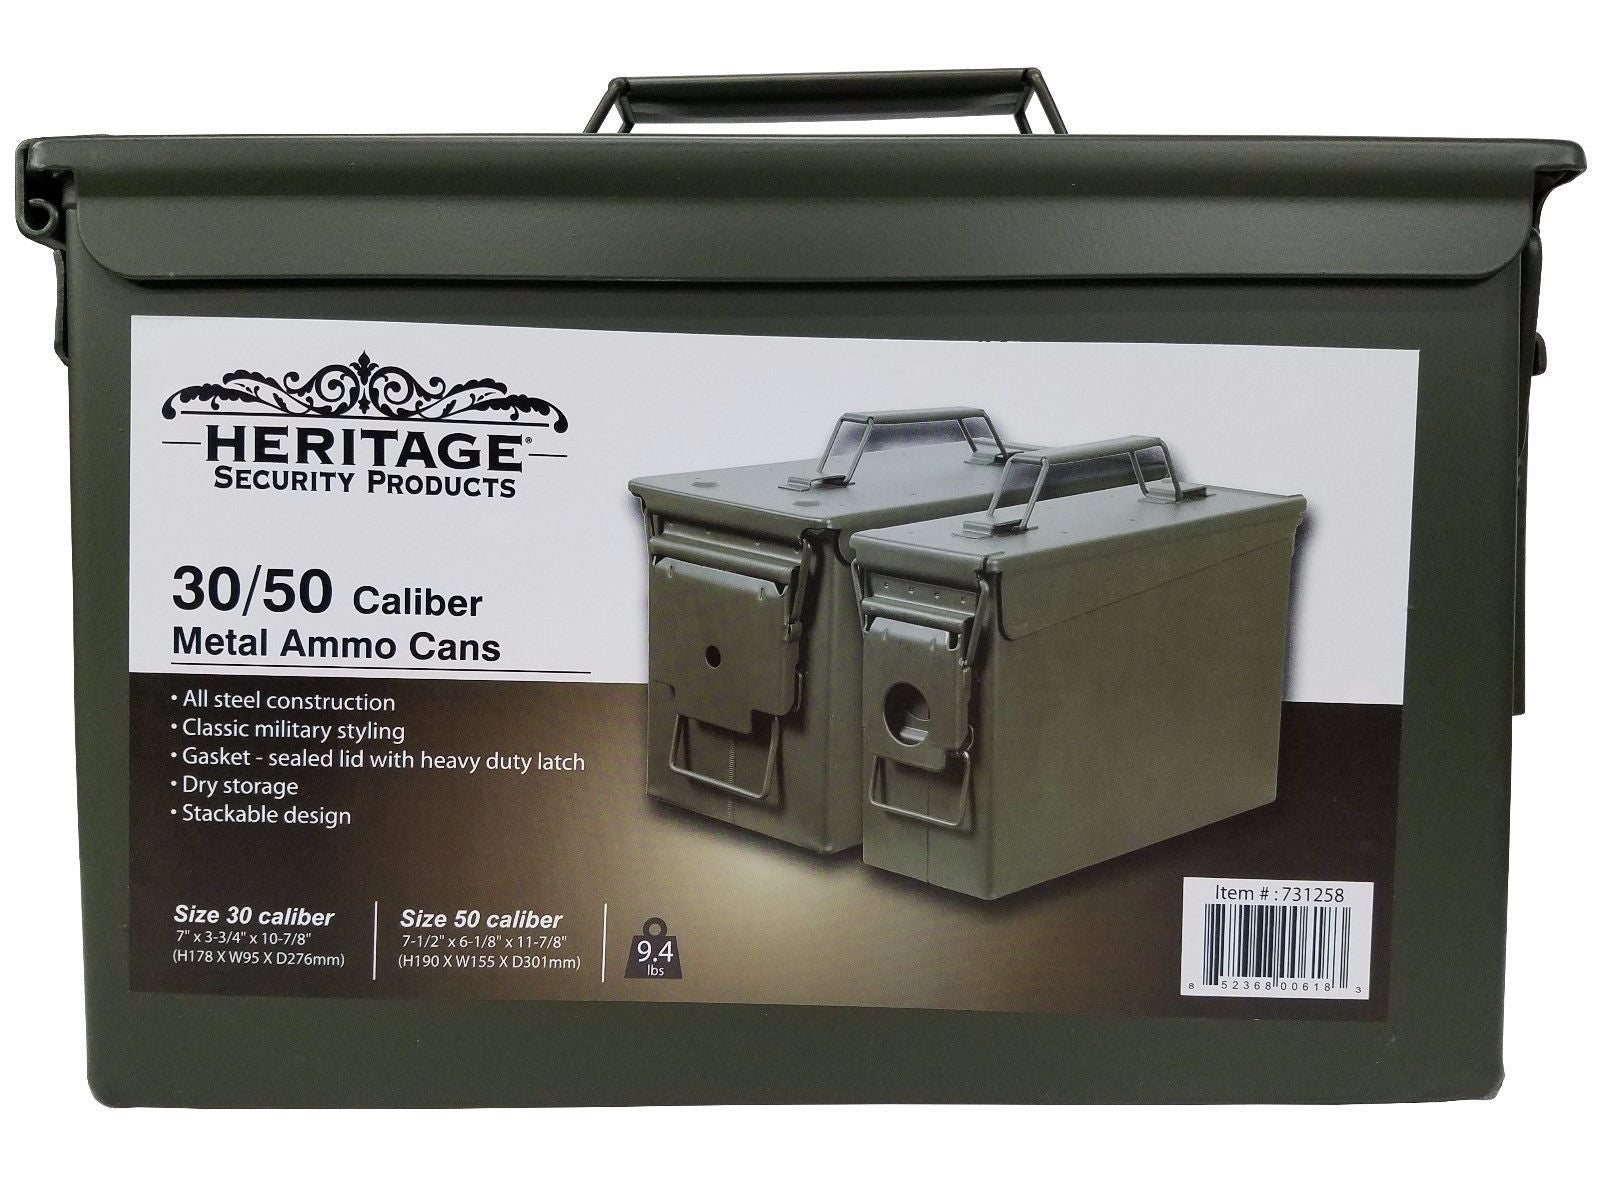 Heritage Security 30/50 Caliber Metal Ammo Cans Steel Military Style 2 Pack